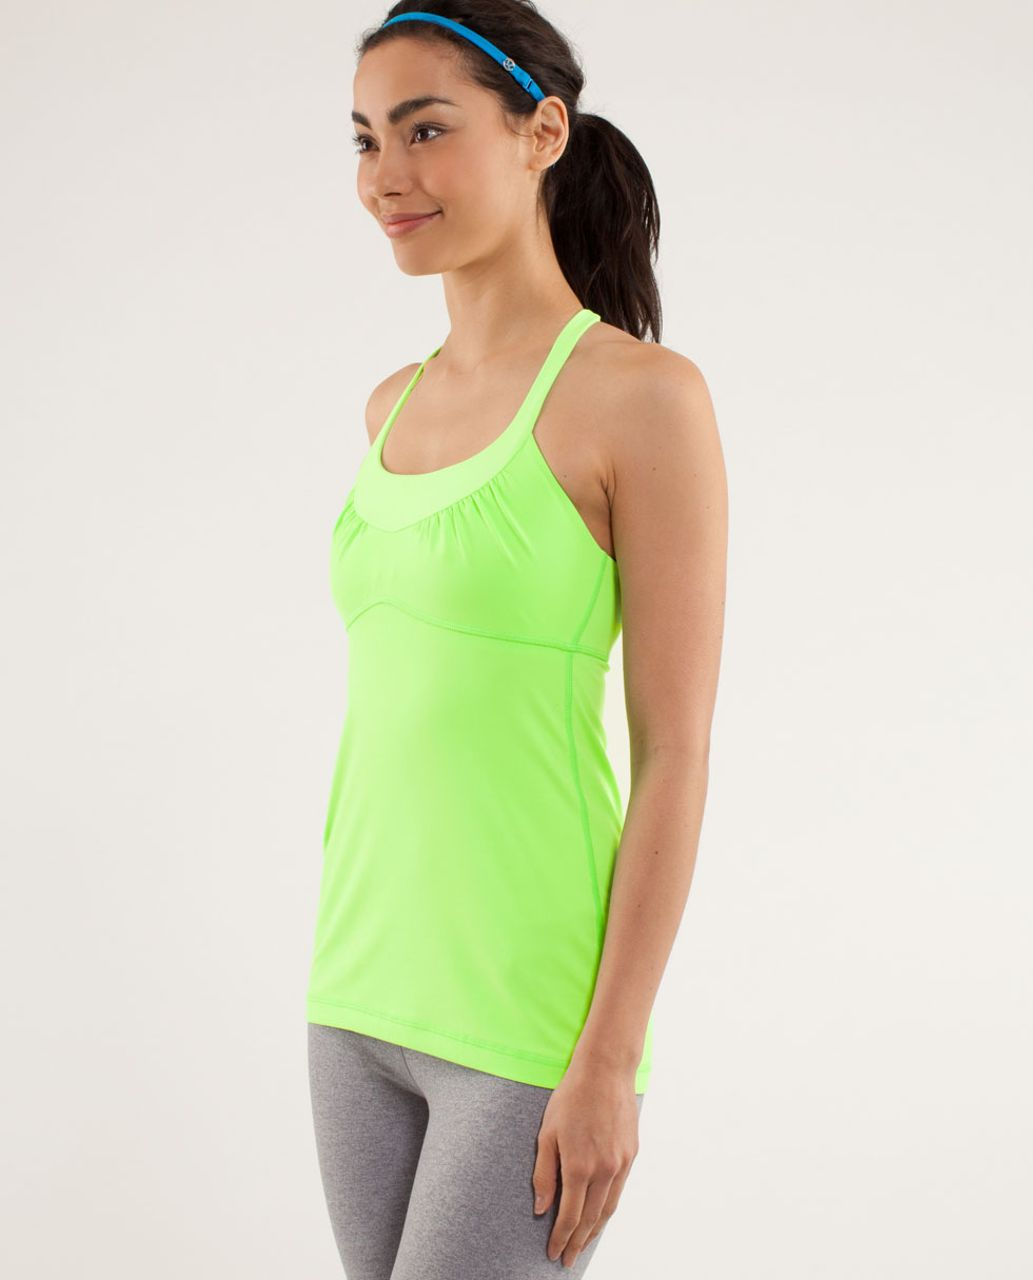 Lululemon Scoop Me Up Tank II - Zippy Green